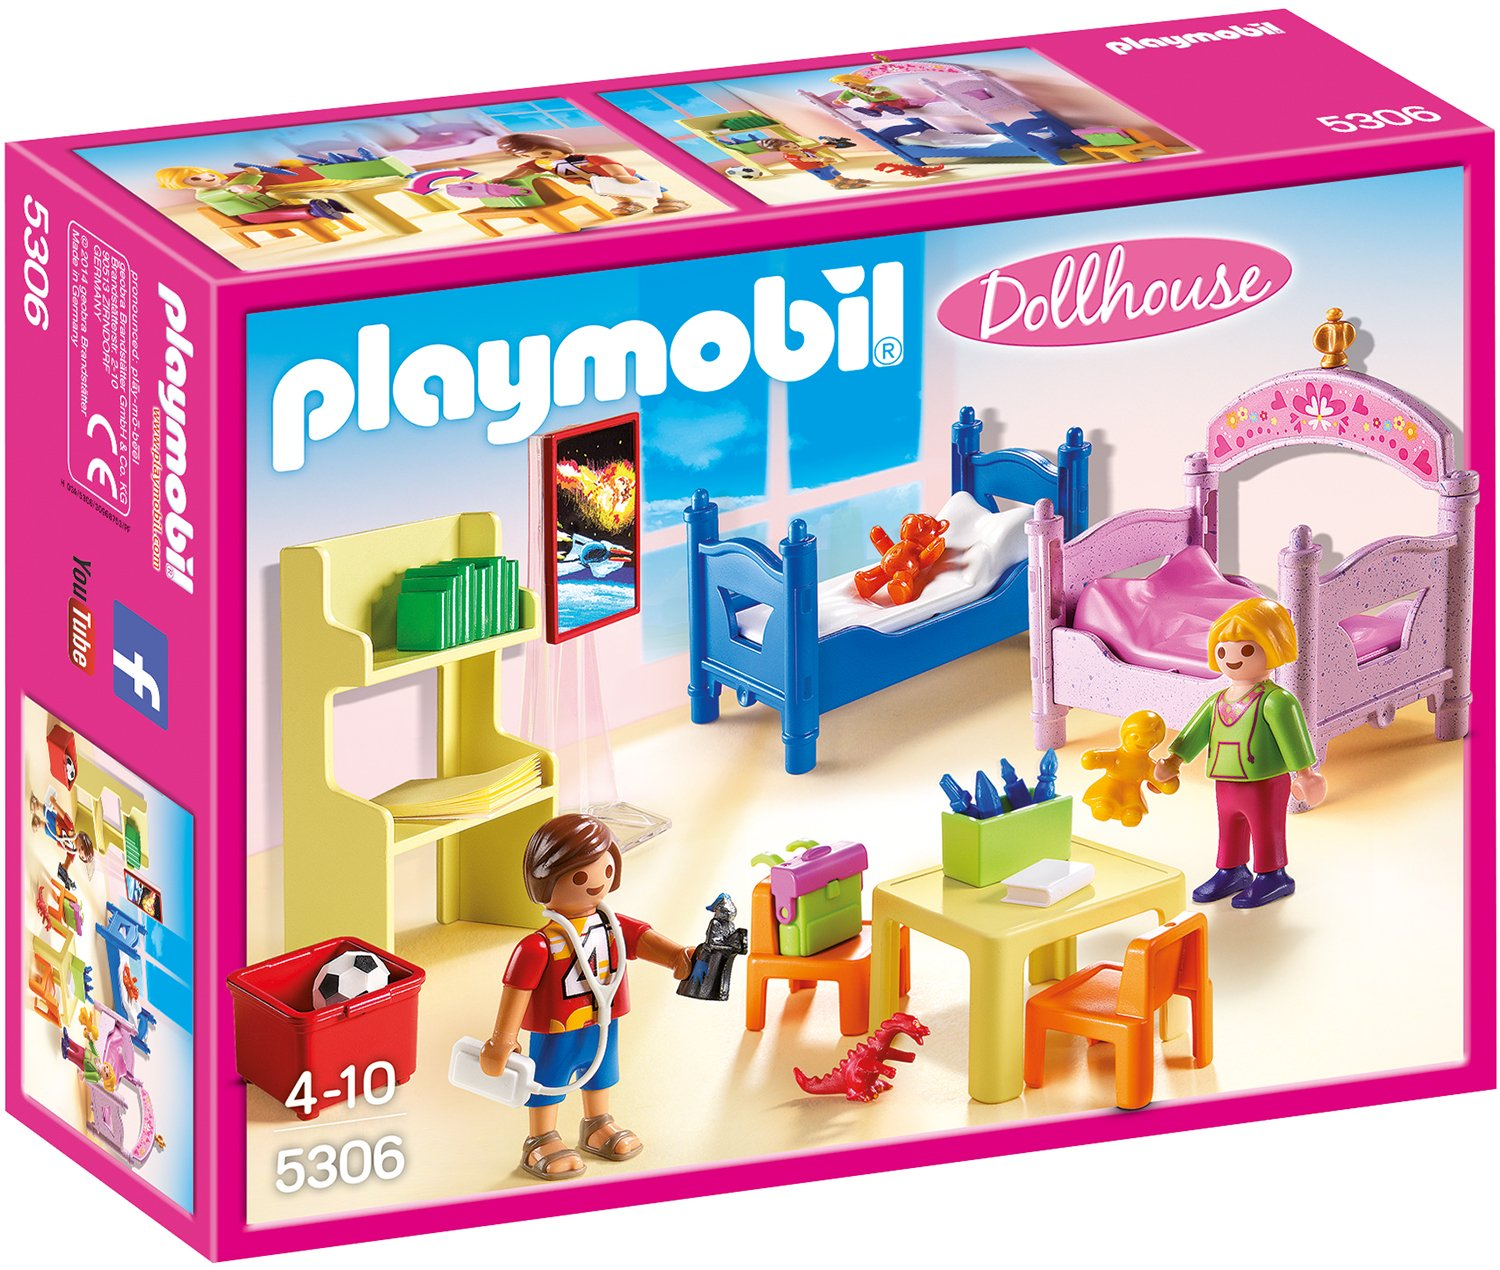 Amazon.de:Playmobil 5306 - Buntes Kinderzimmer